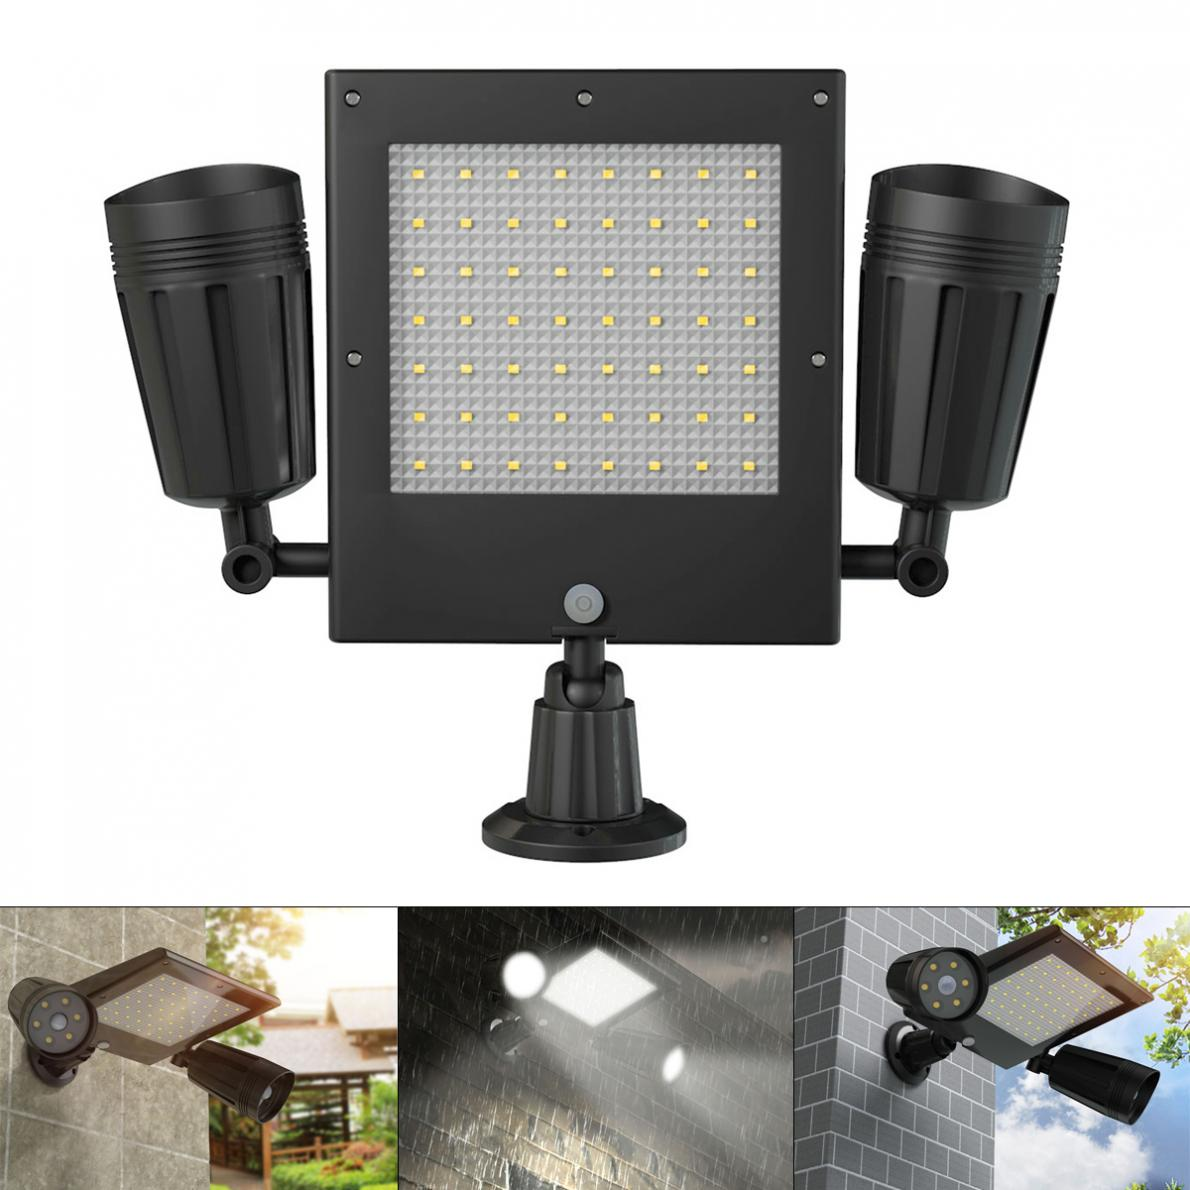 18650 3 7V 2000mAh 600LM Solar Double Spotlight 360 Degree Rotating PIR Motion Sensor Wall Light